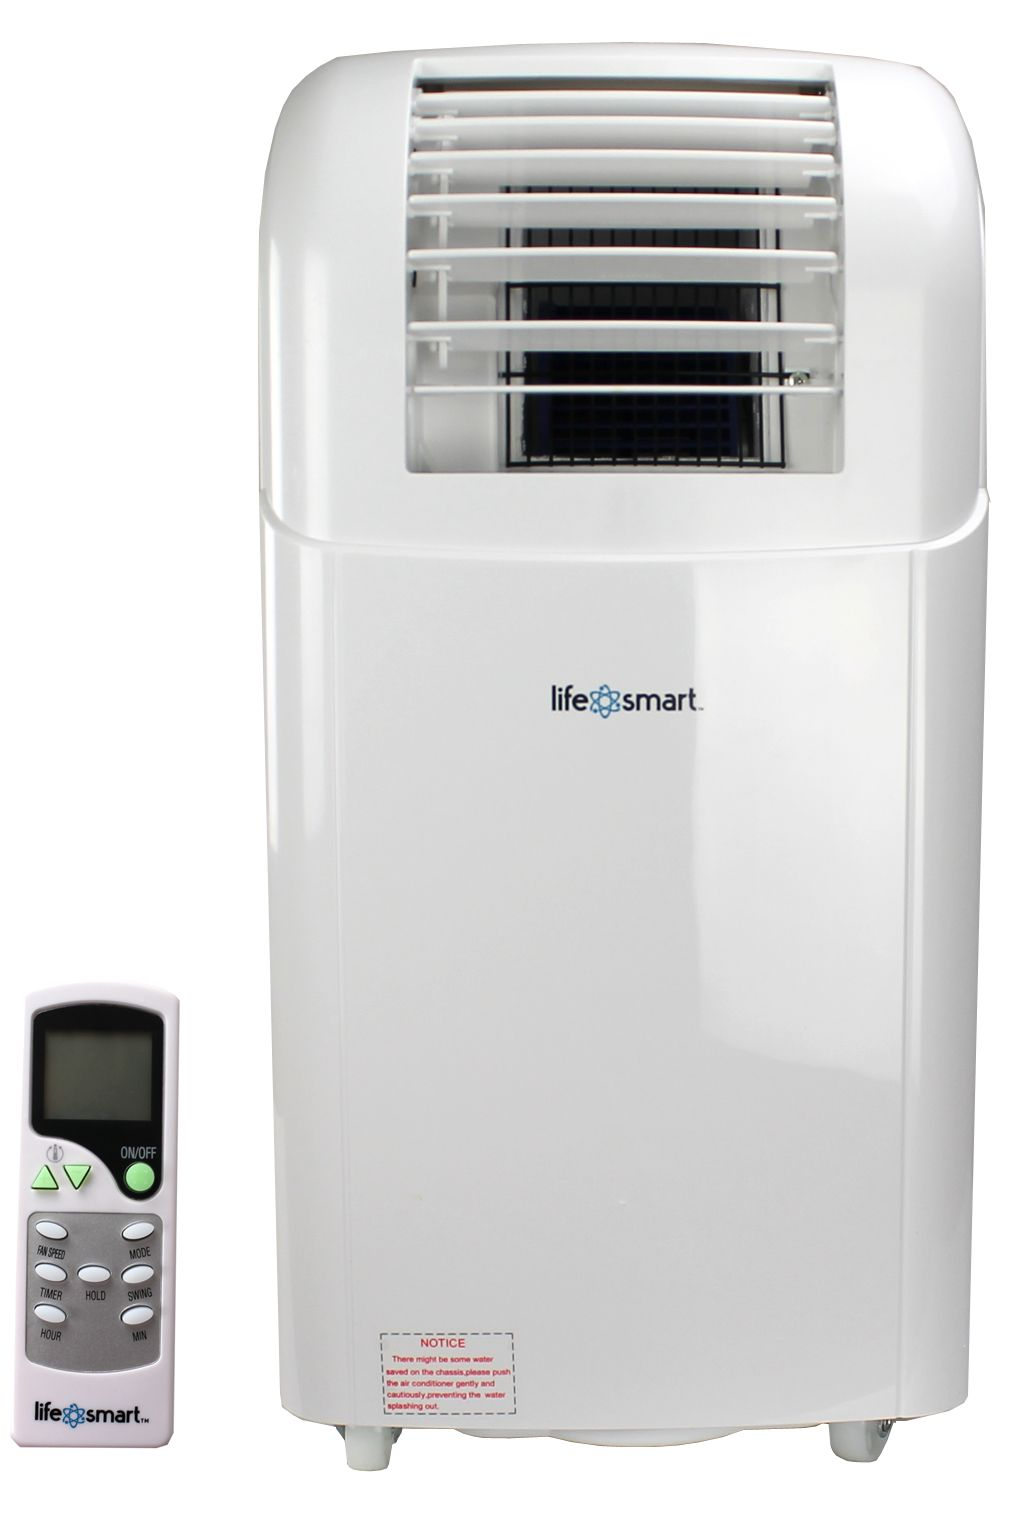 Lifesmart Lifesmart 12 000 Btu Portable Air Conditioner Ls Ypf 12c Lifesmart Hvac